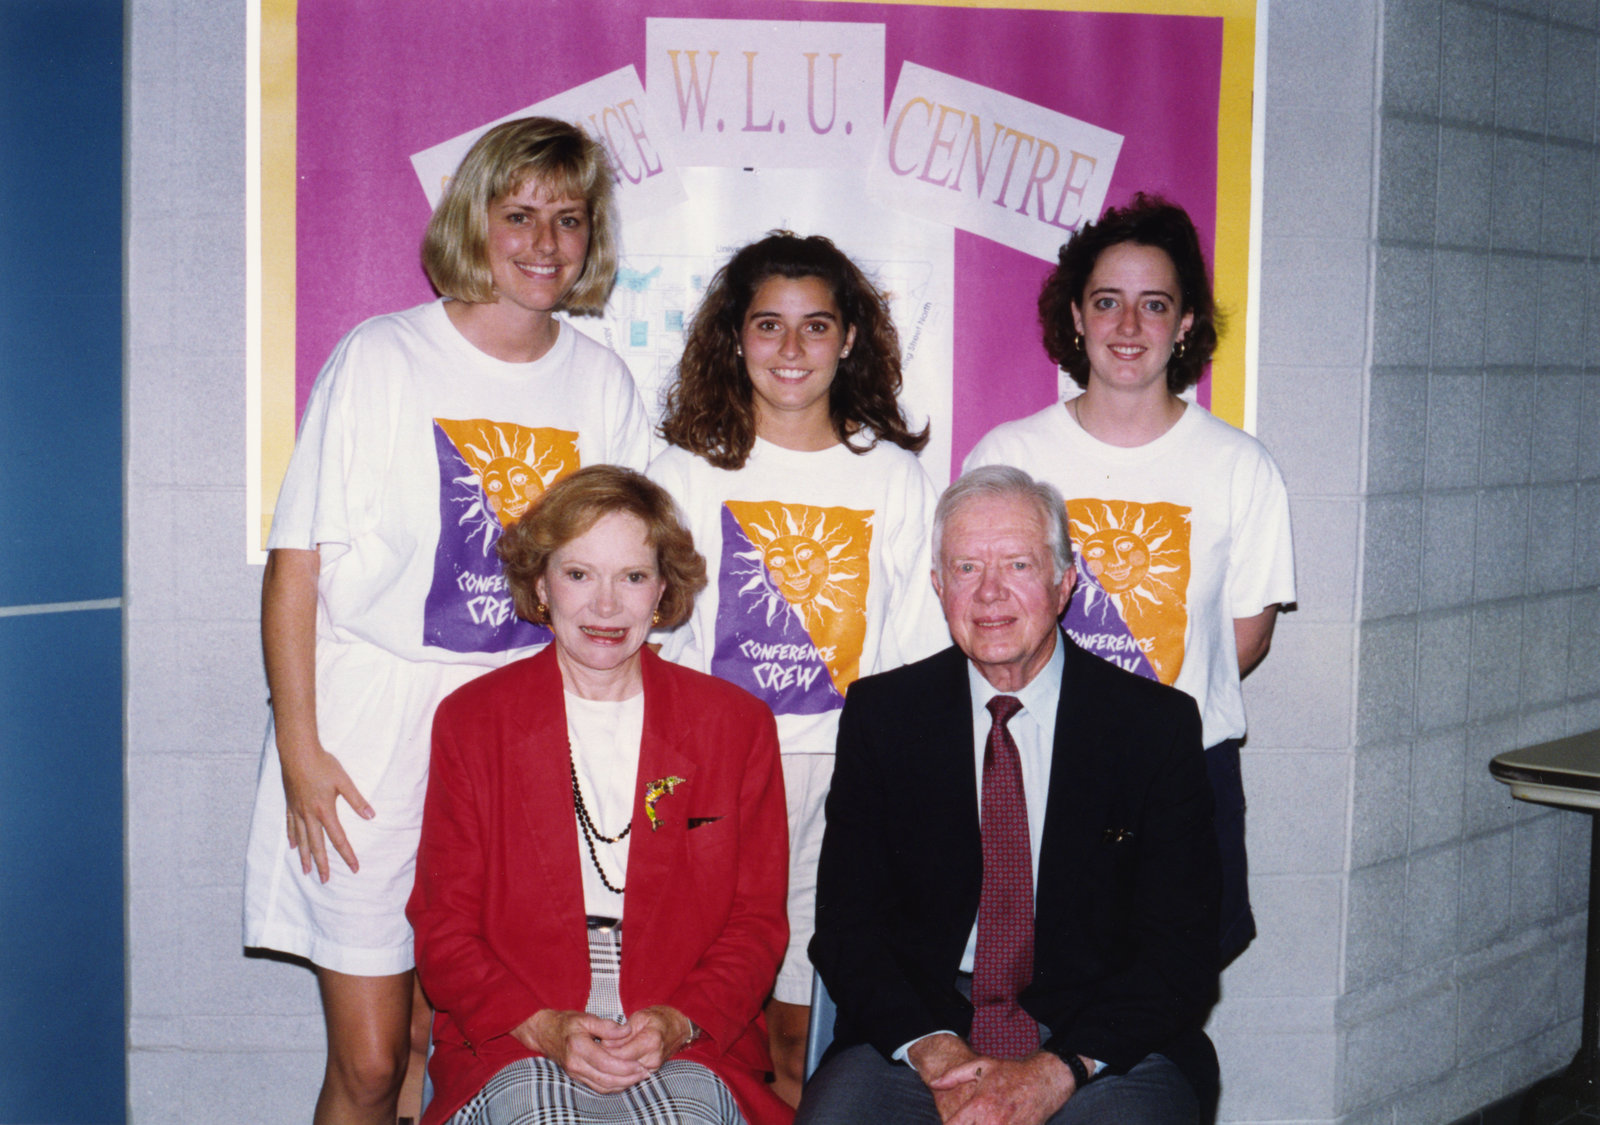 President Jimmy Carter and First Lady Rosalynn Carter at Wilfrid Laurier University, 1993